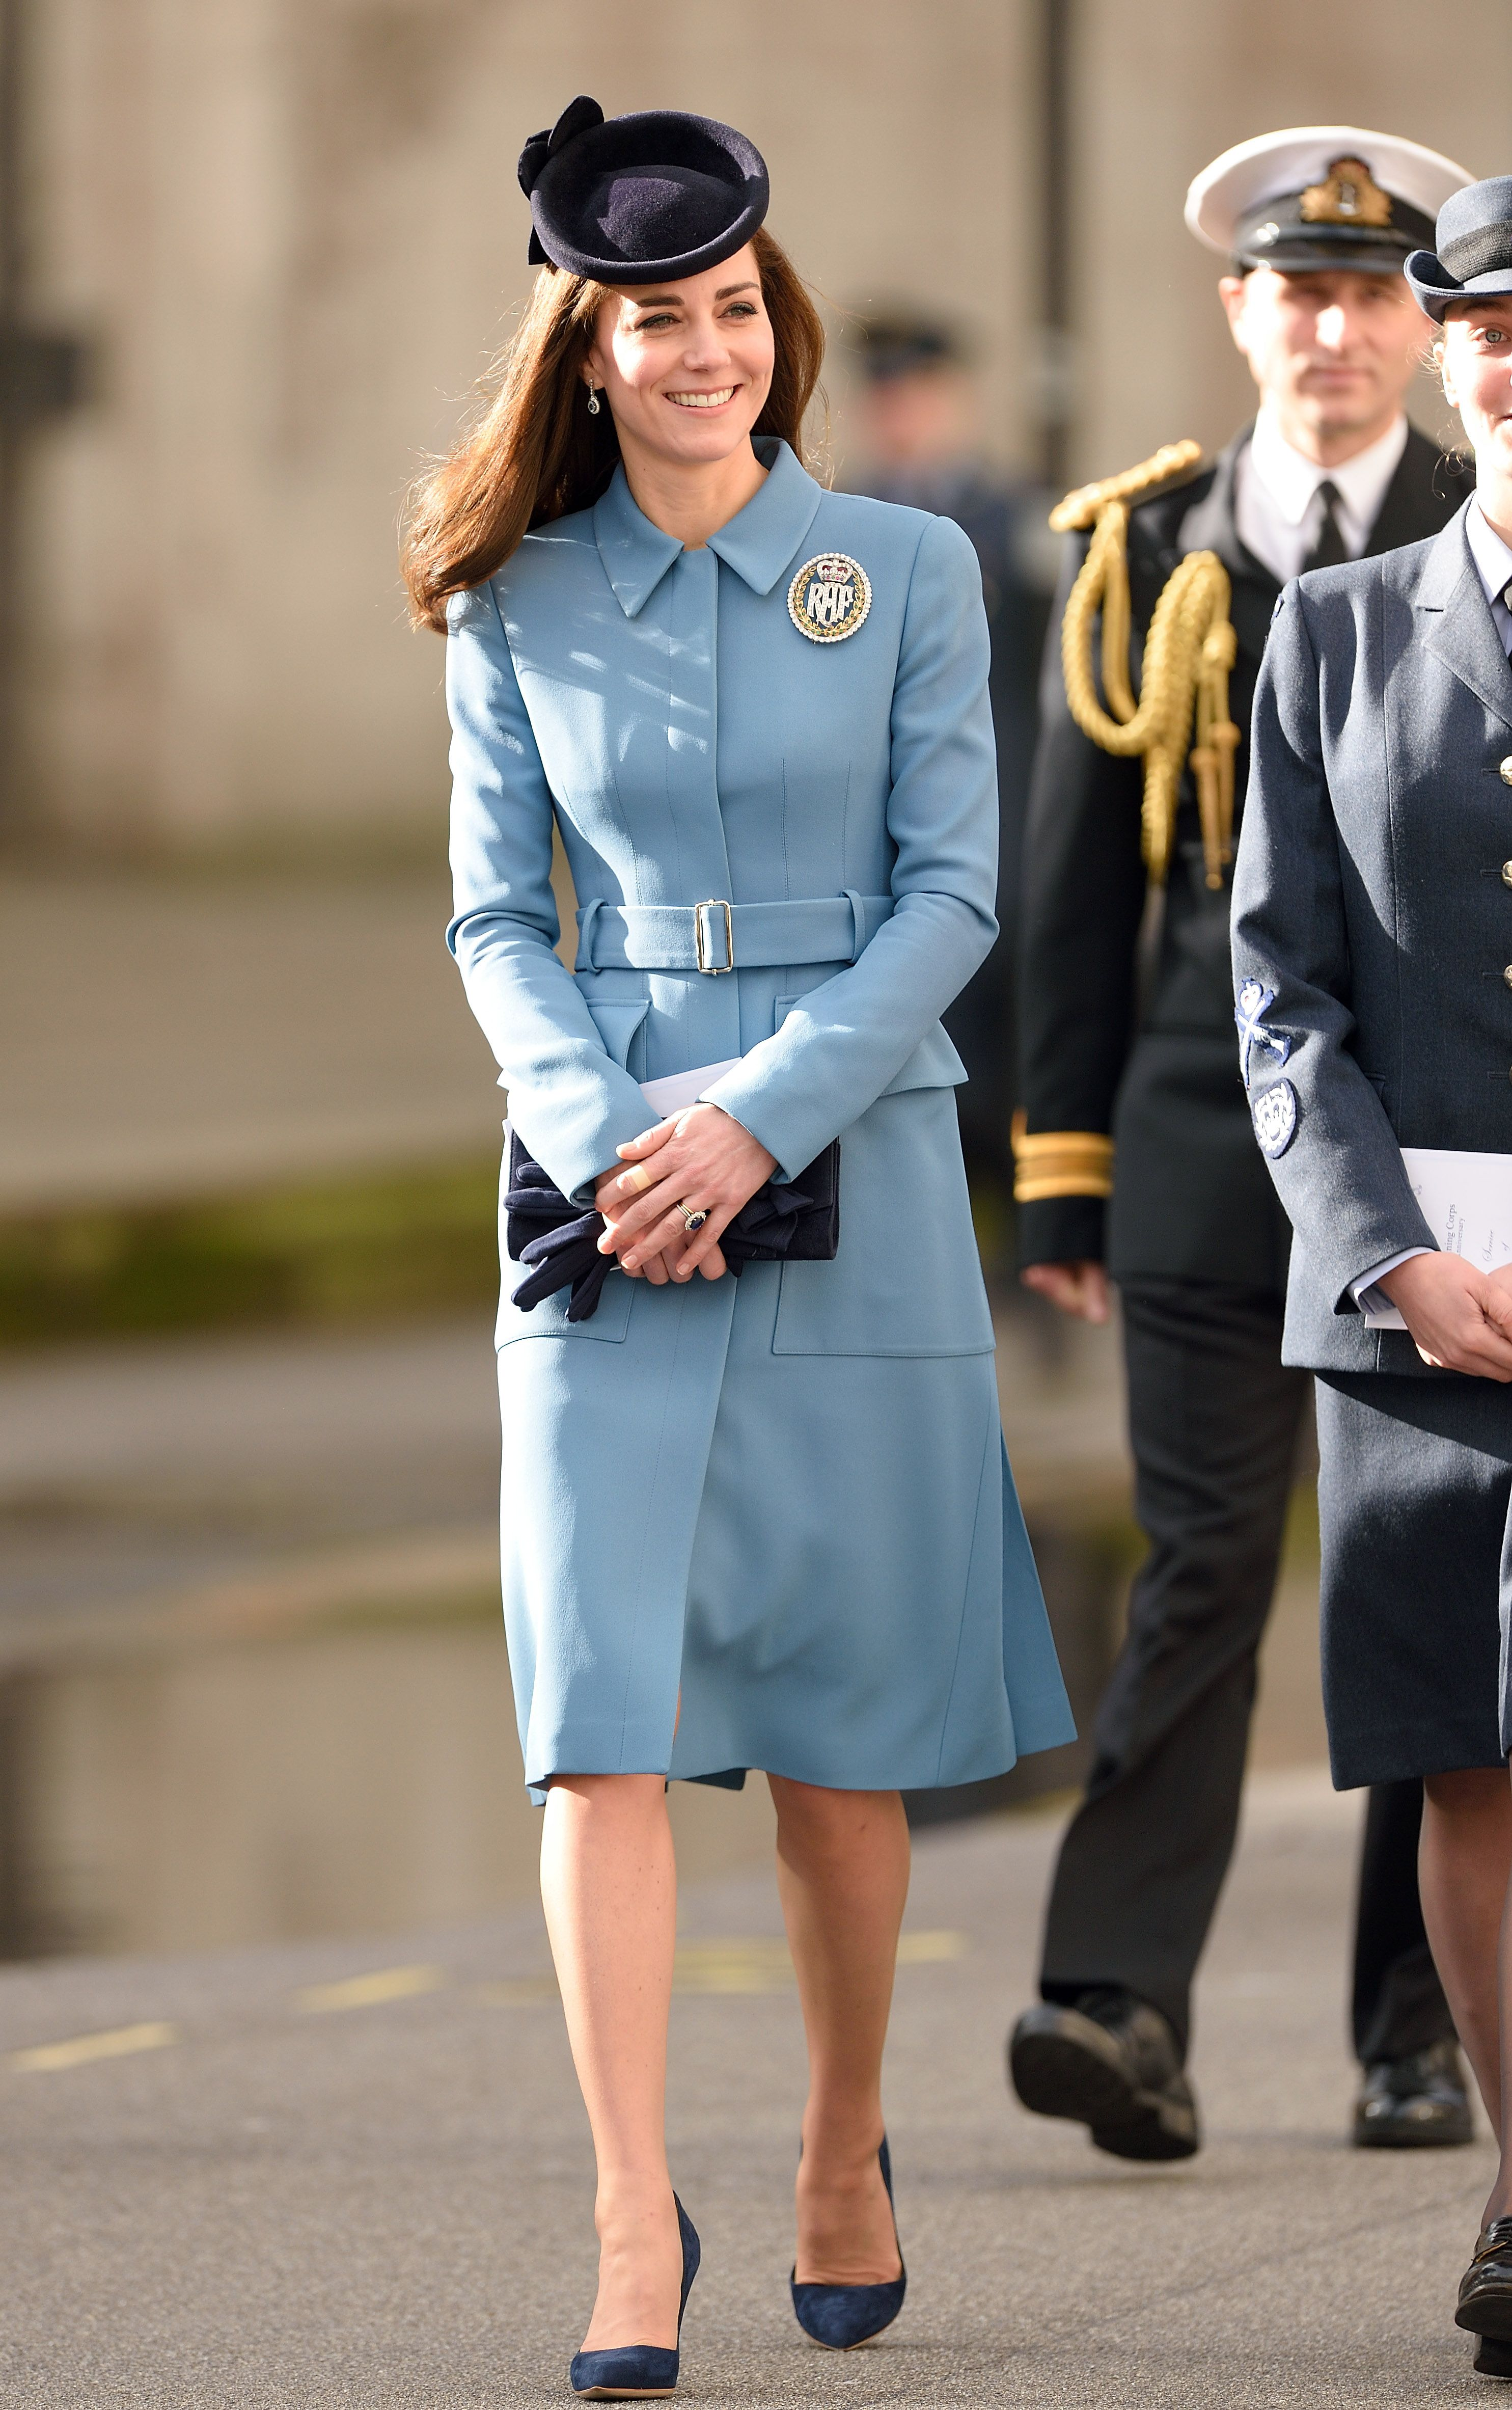 Kate Middleton Best Fashion and Style Moments - Kate Middleton\'s ...